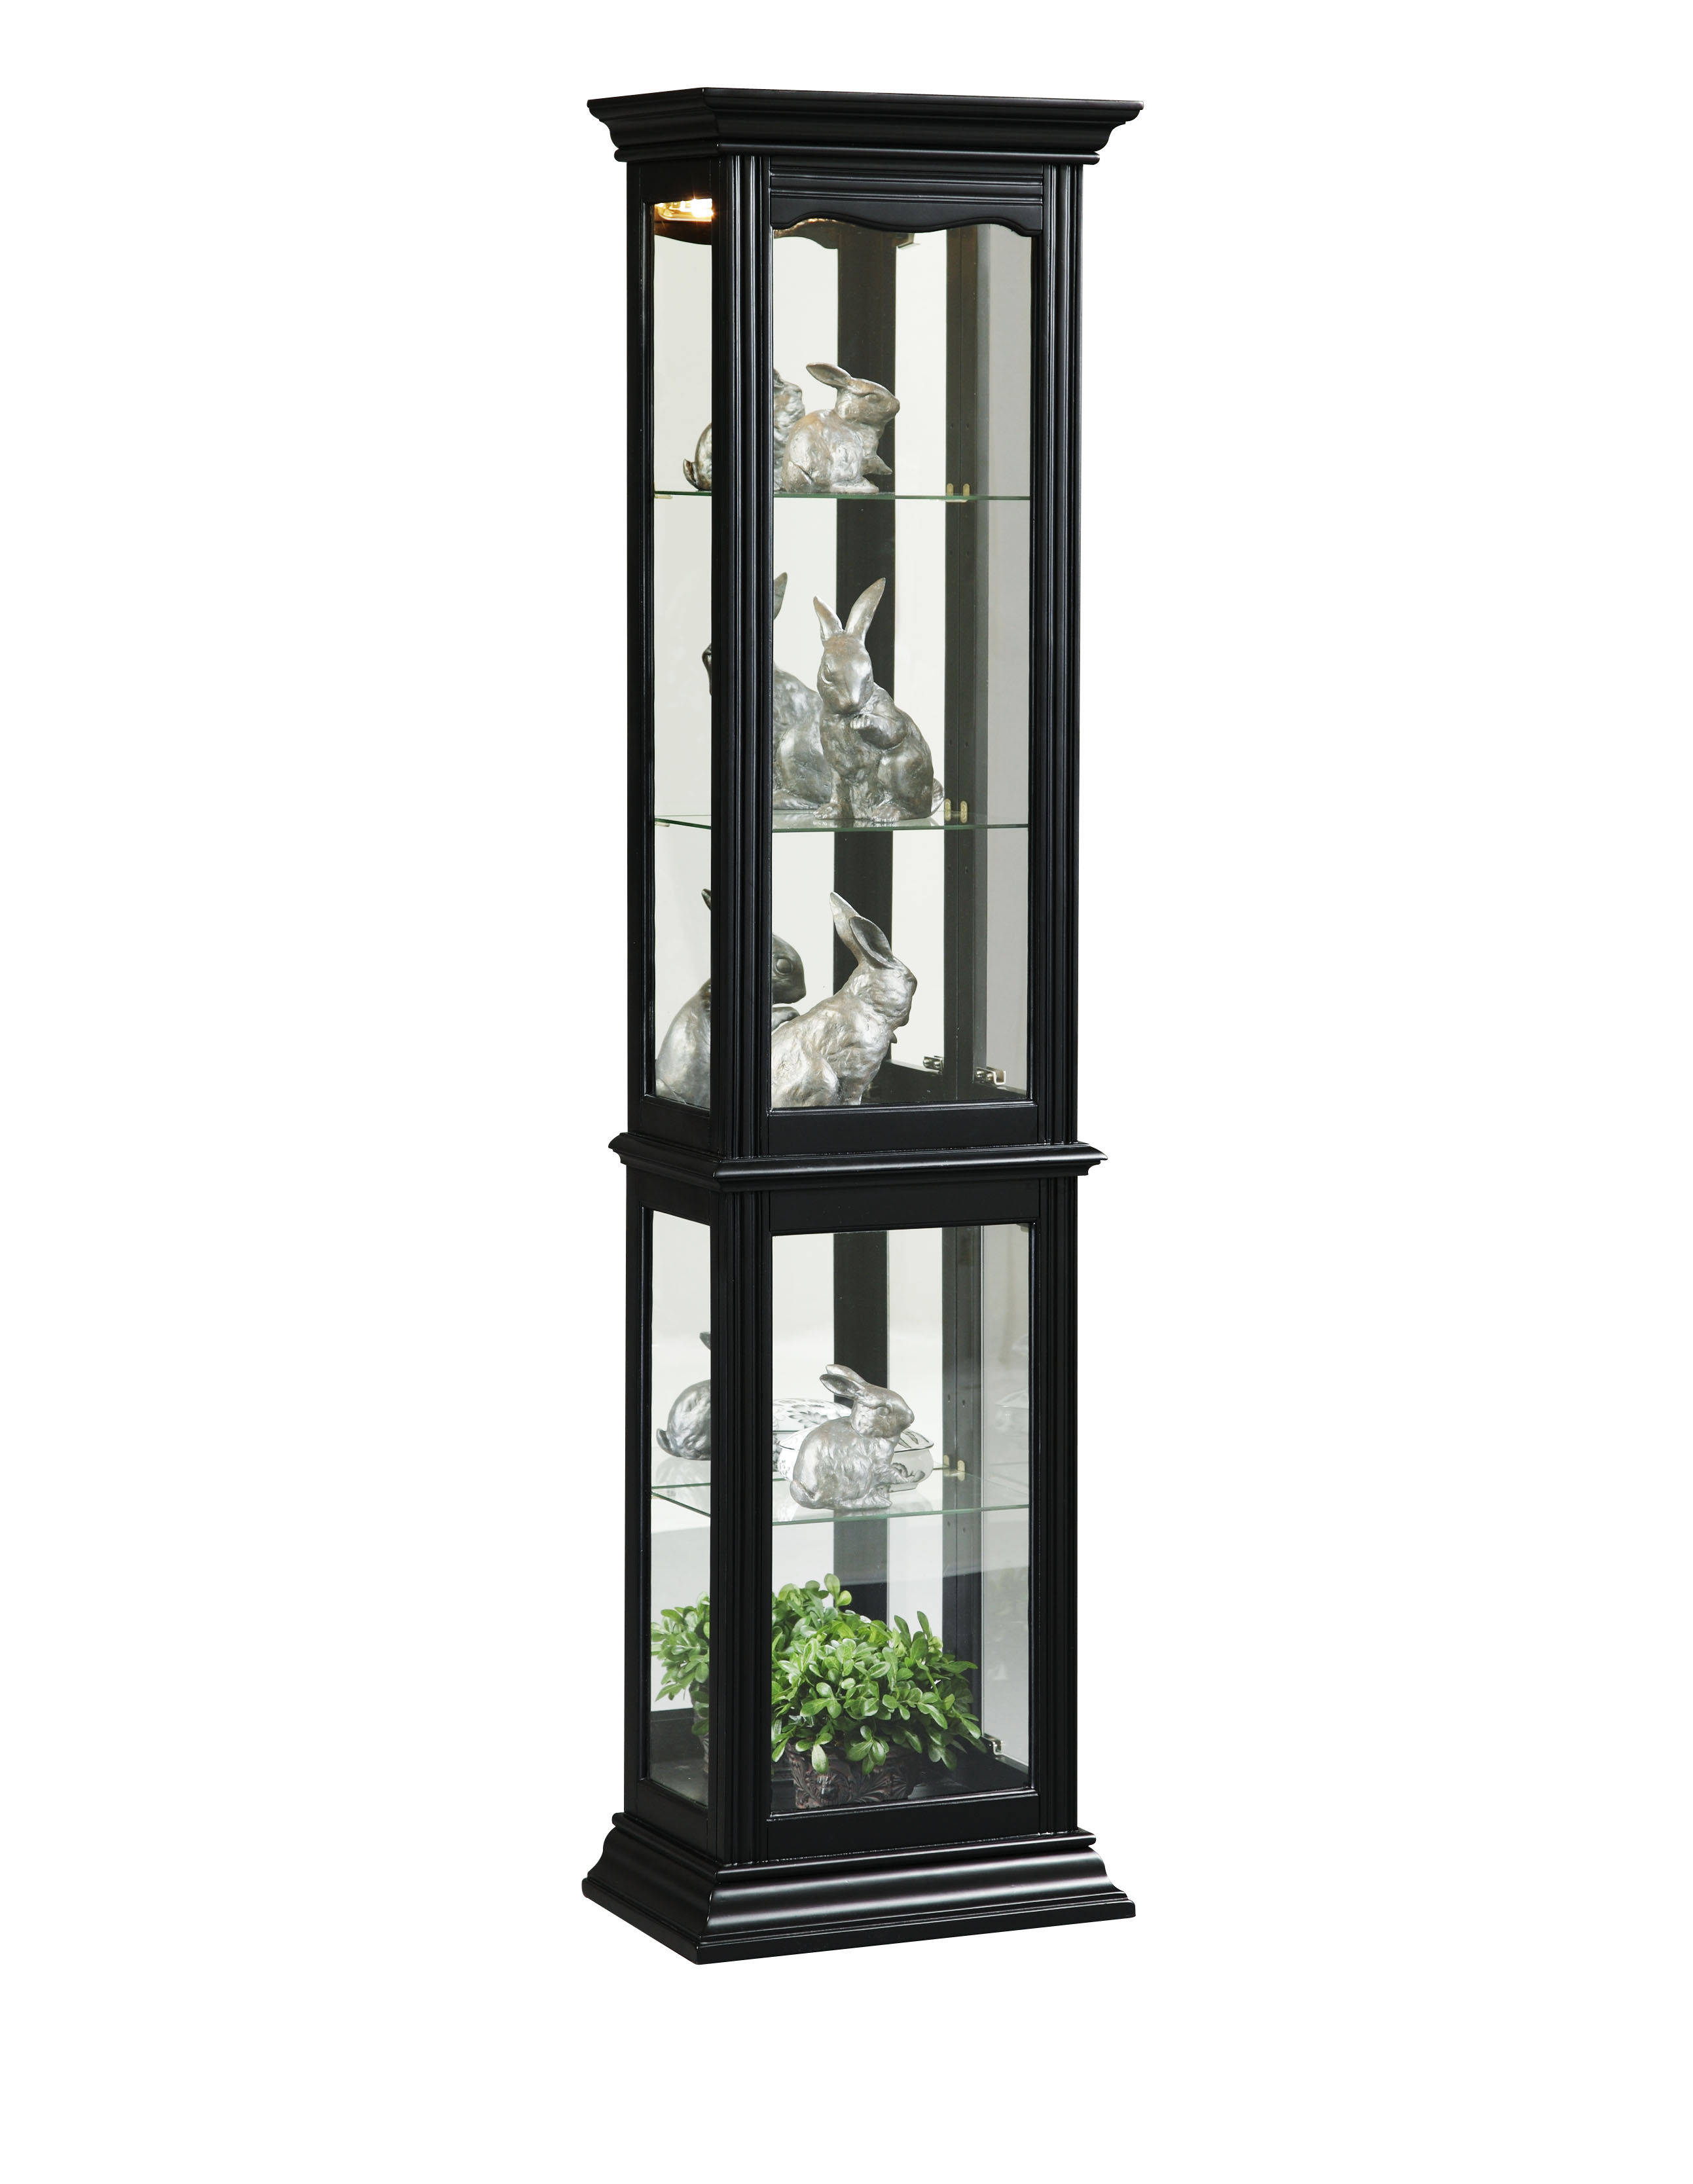 Pulaski furniture black curio cabinet